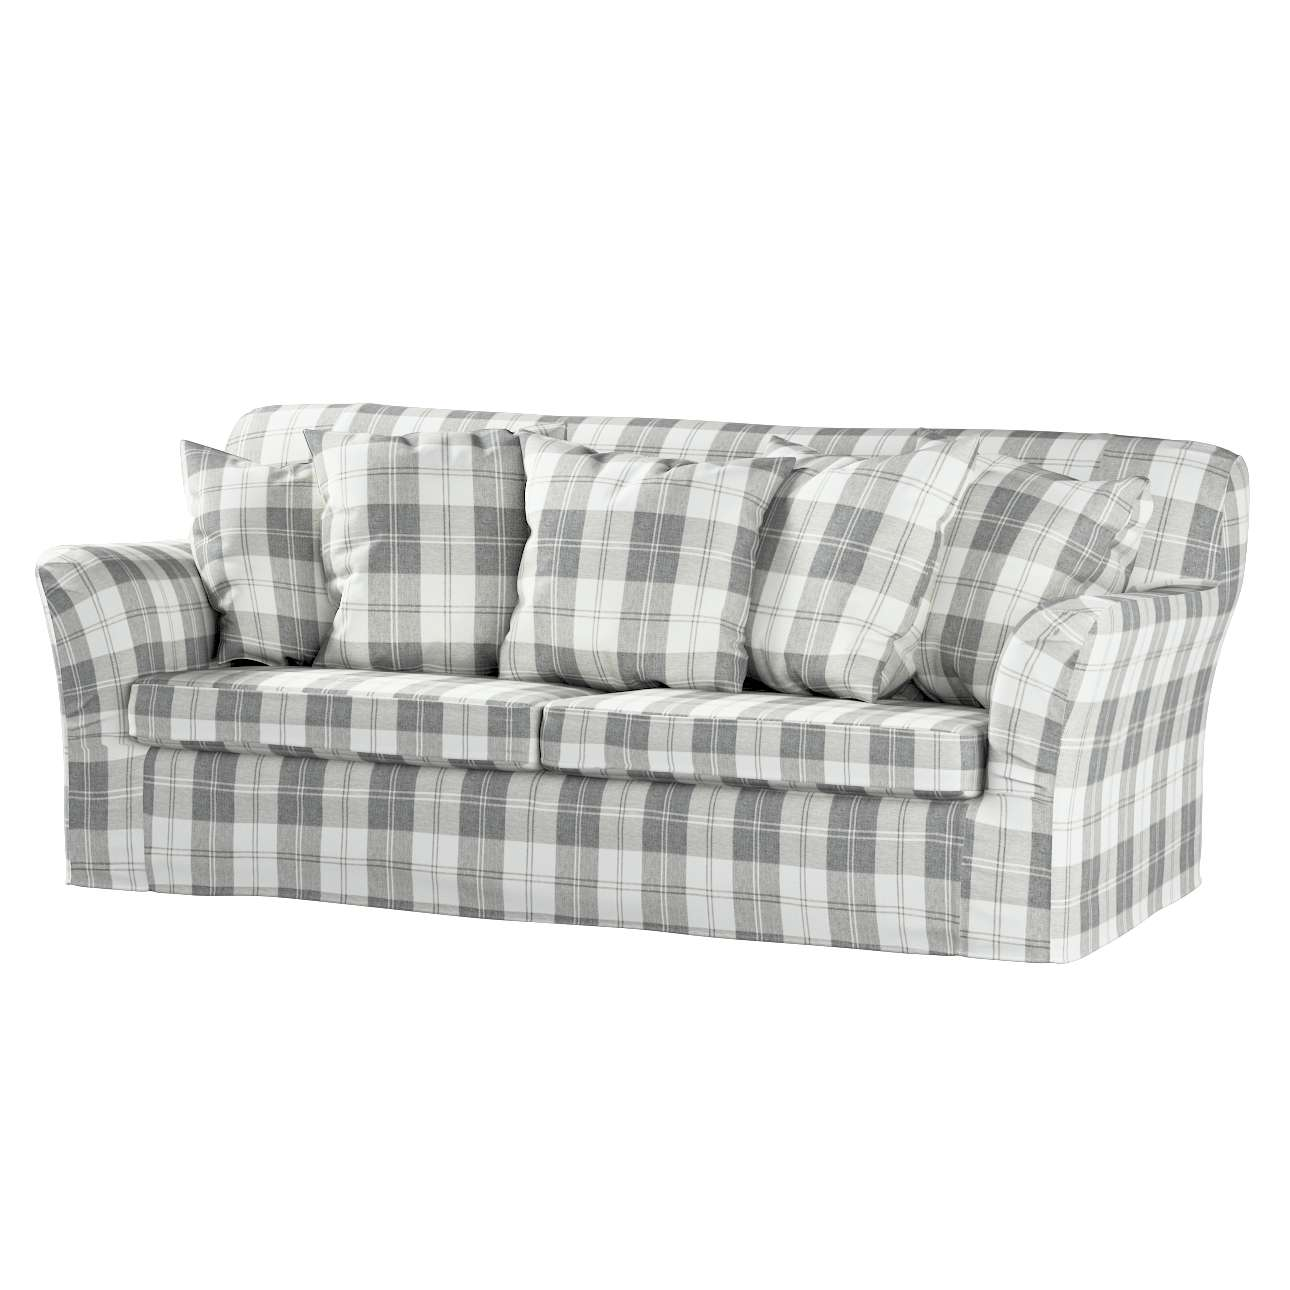 Tomelilla sofa bed cover Tomelilla sofa bed in collection Edinburgh, fabric: 115-79